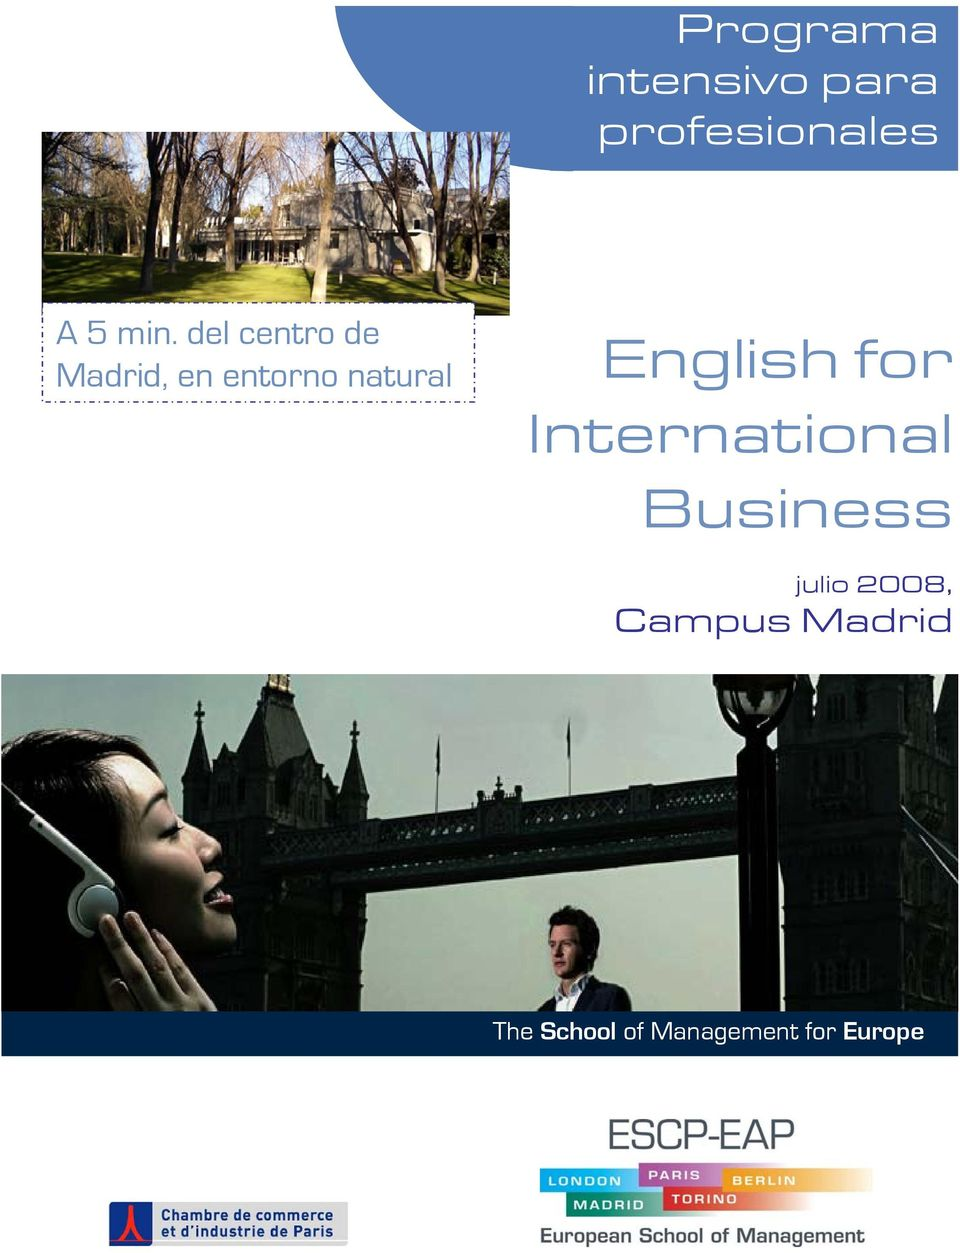 English for International Business julio